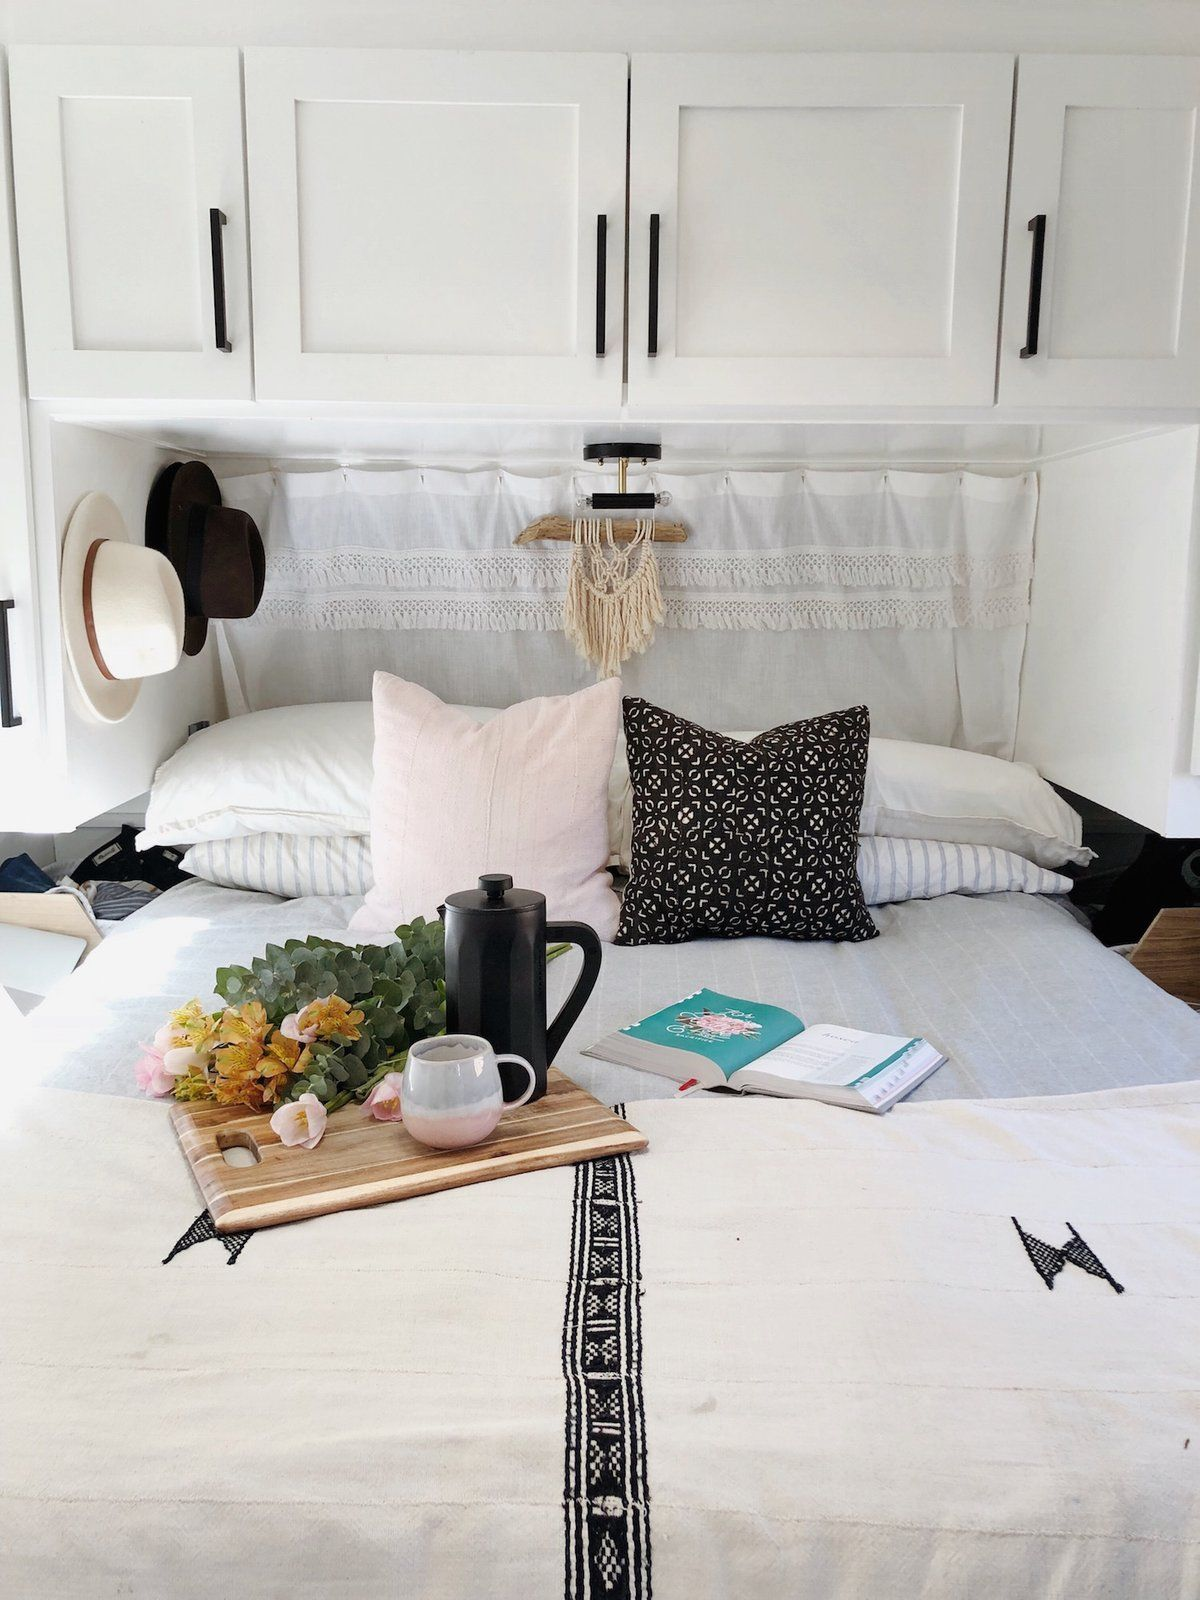 A Couple Spend 3k To Turn An Old Rv Into A Cozy Home For Five